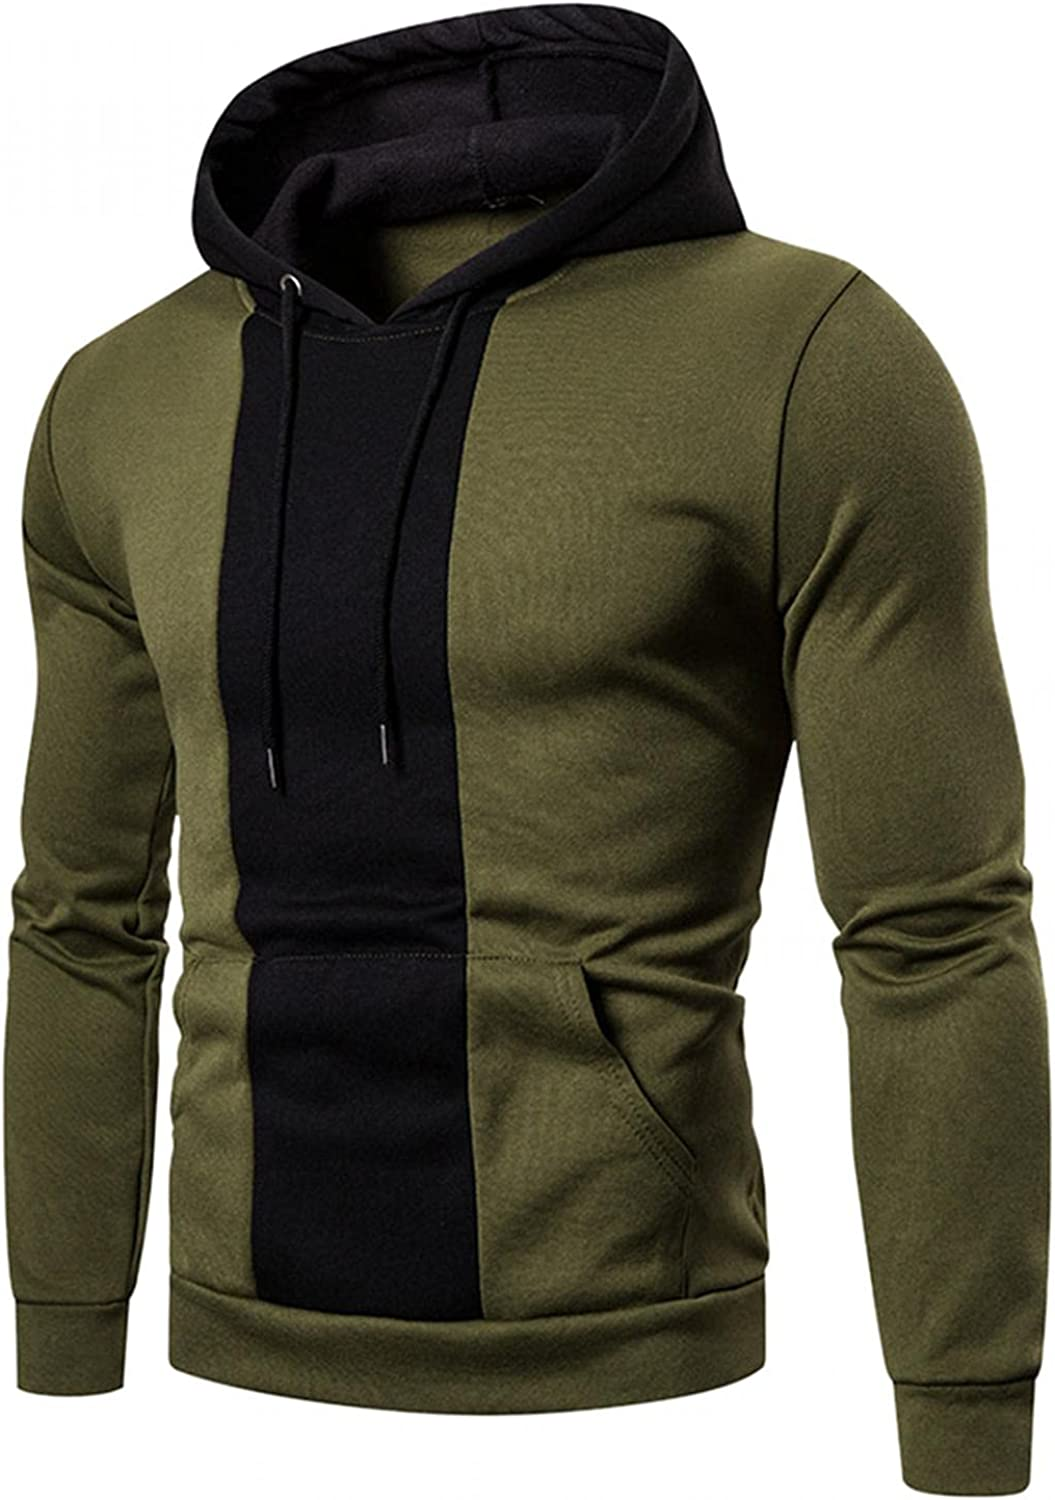 Hoodies for Men Men's Casual Color Splice Long Sleeve Topss Round Neck Drawstring Fashion Hoodies & Sweatshirts Blouse